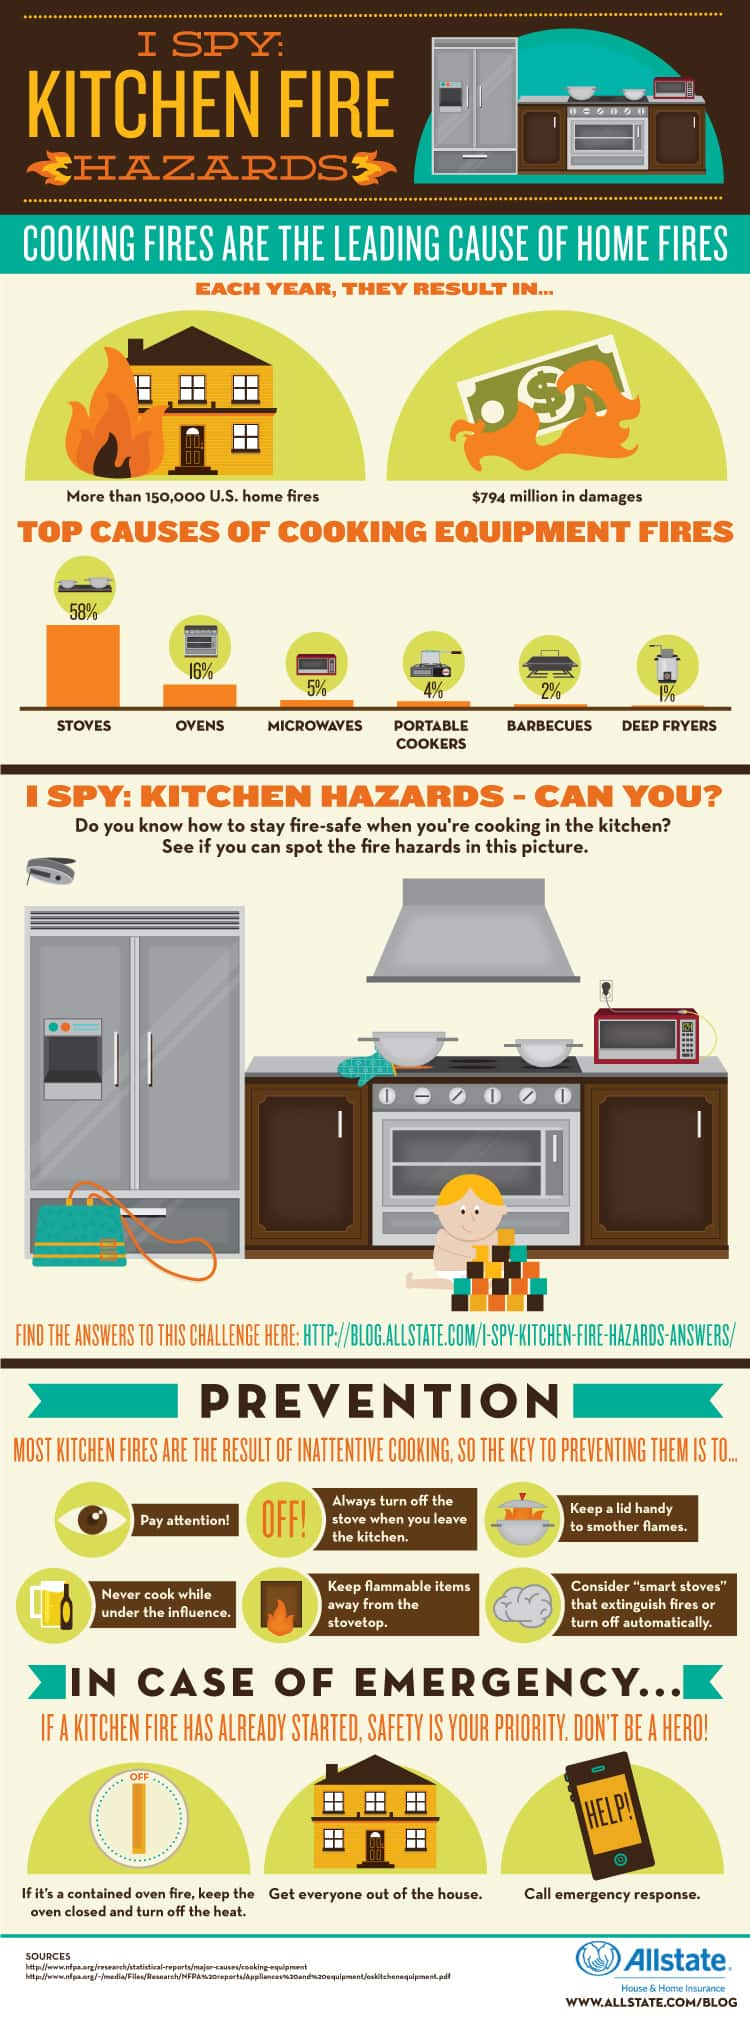 Is Your Kitchen Fire-Safe? :: Mint.com/blog